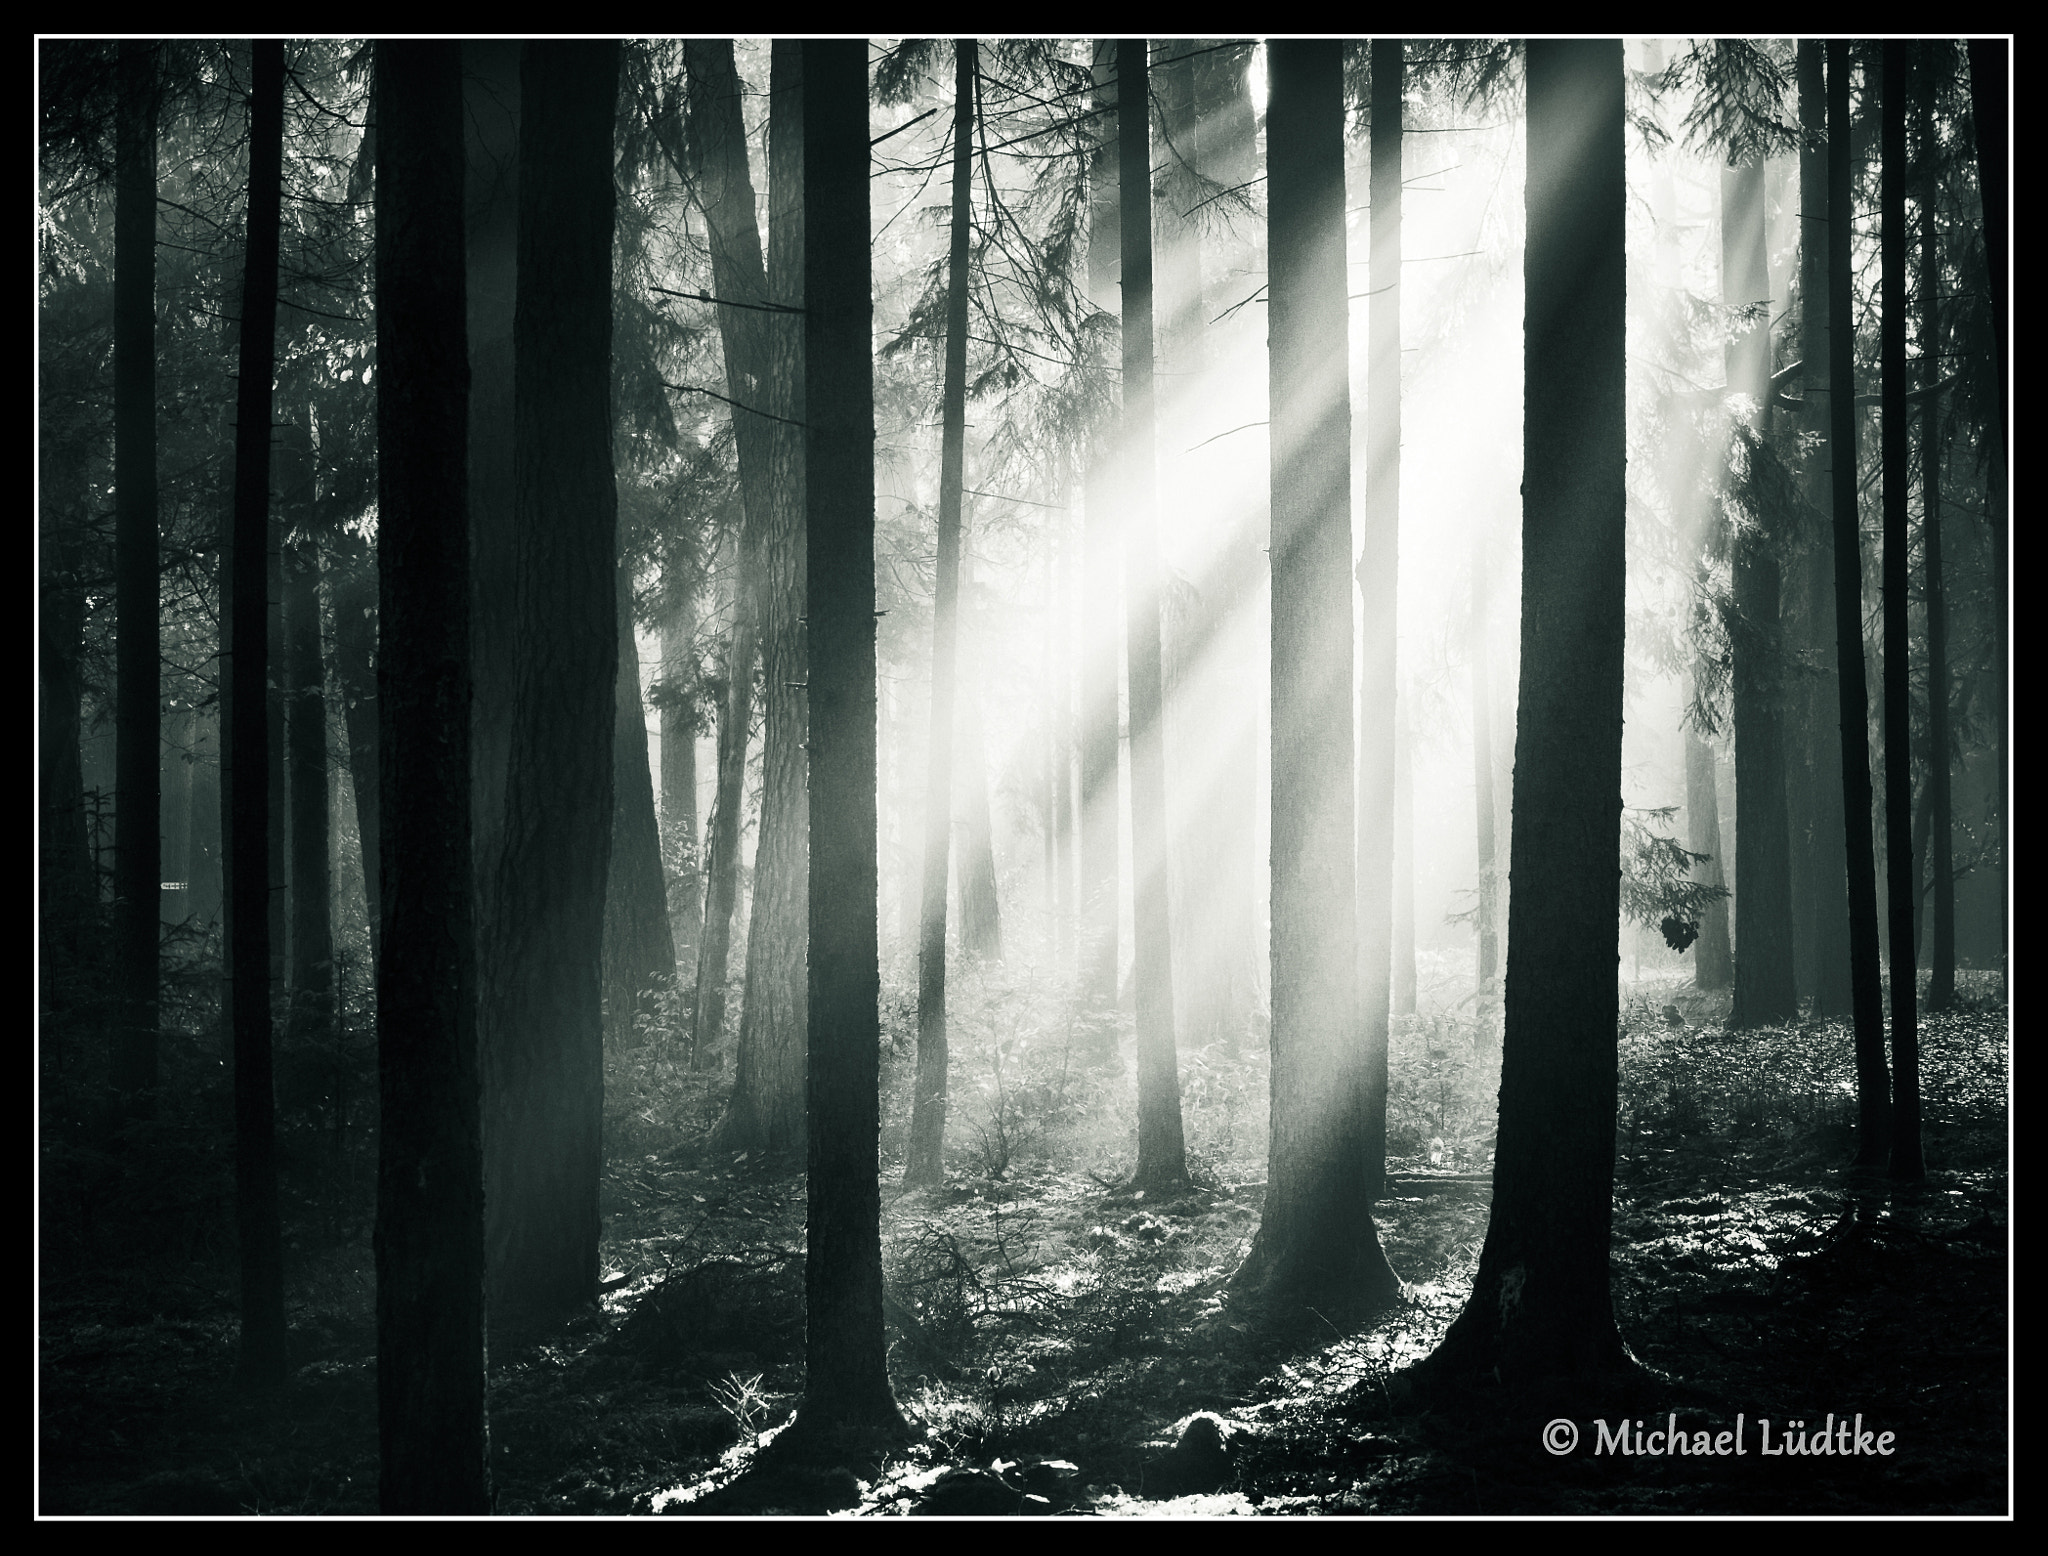 Photograph Light in the Forest by Michael Lüdtke on 500px